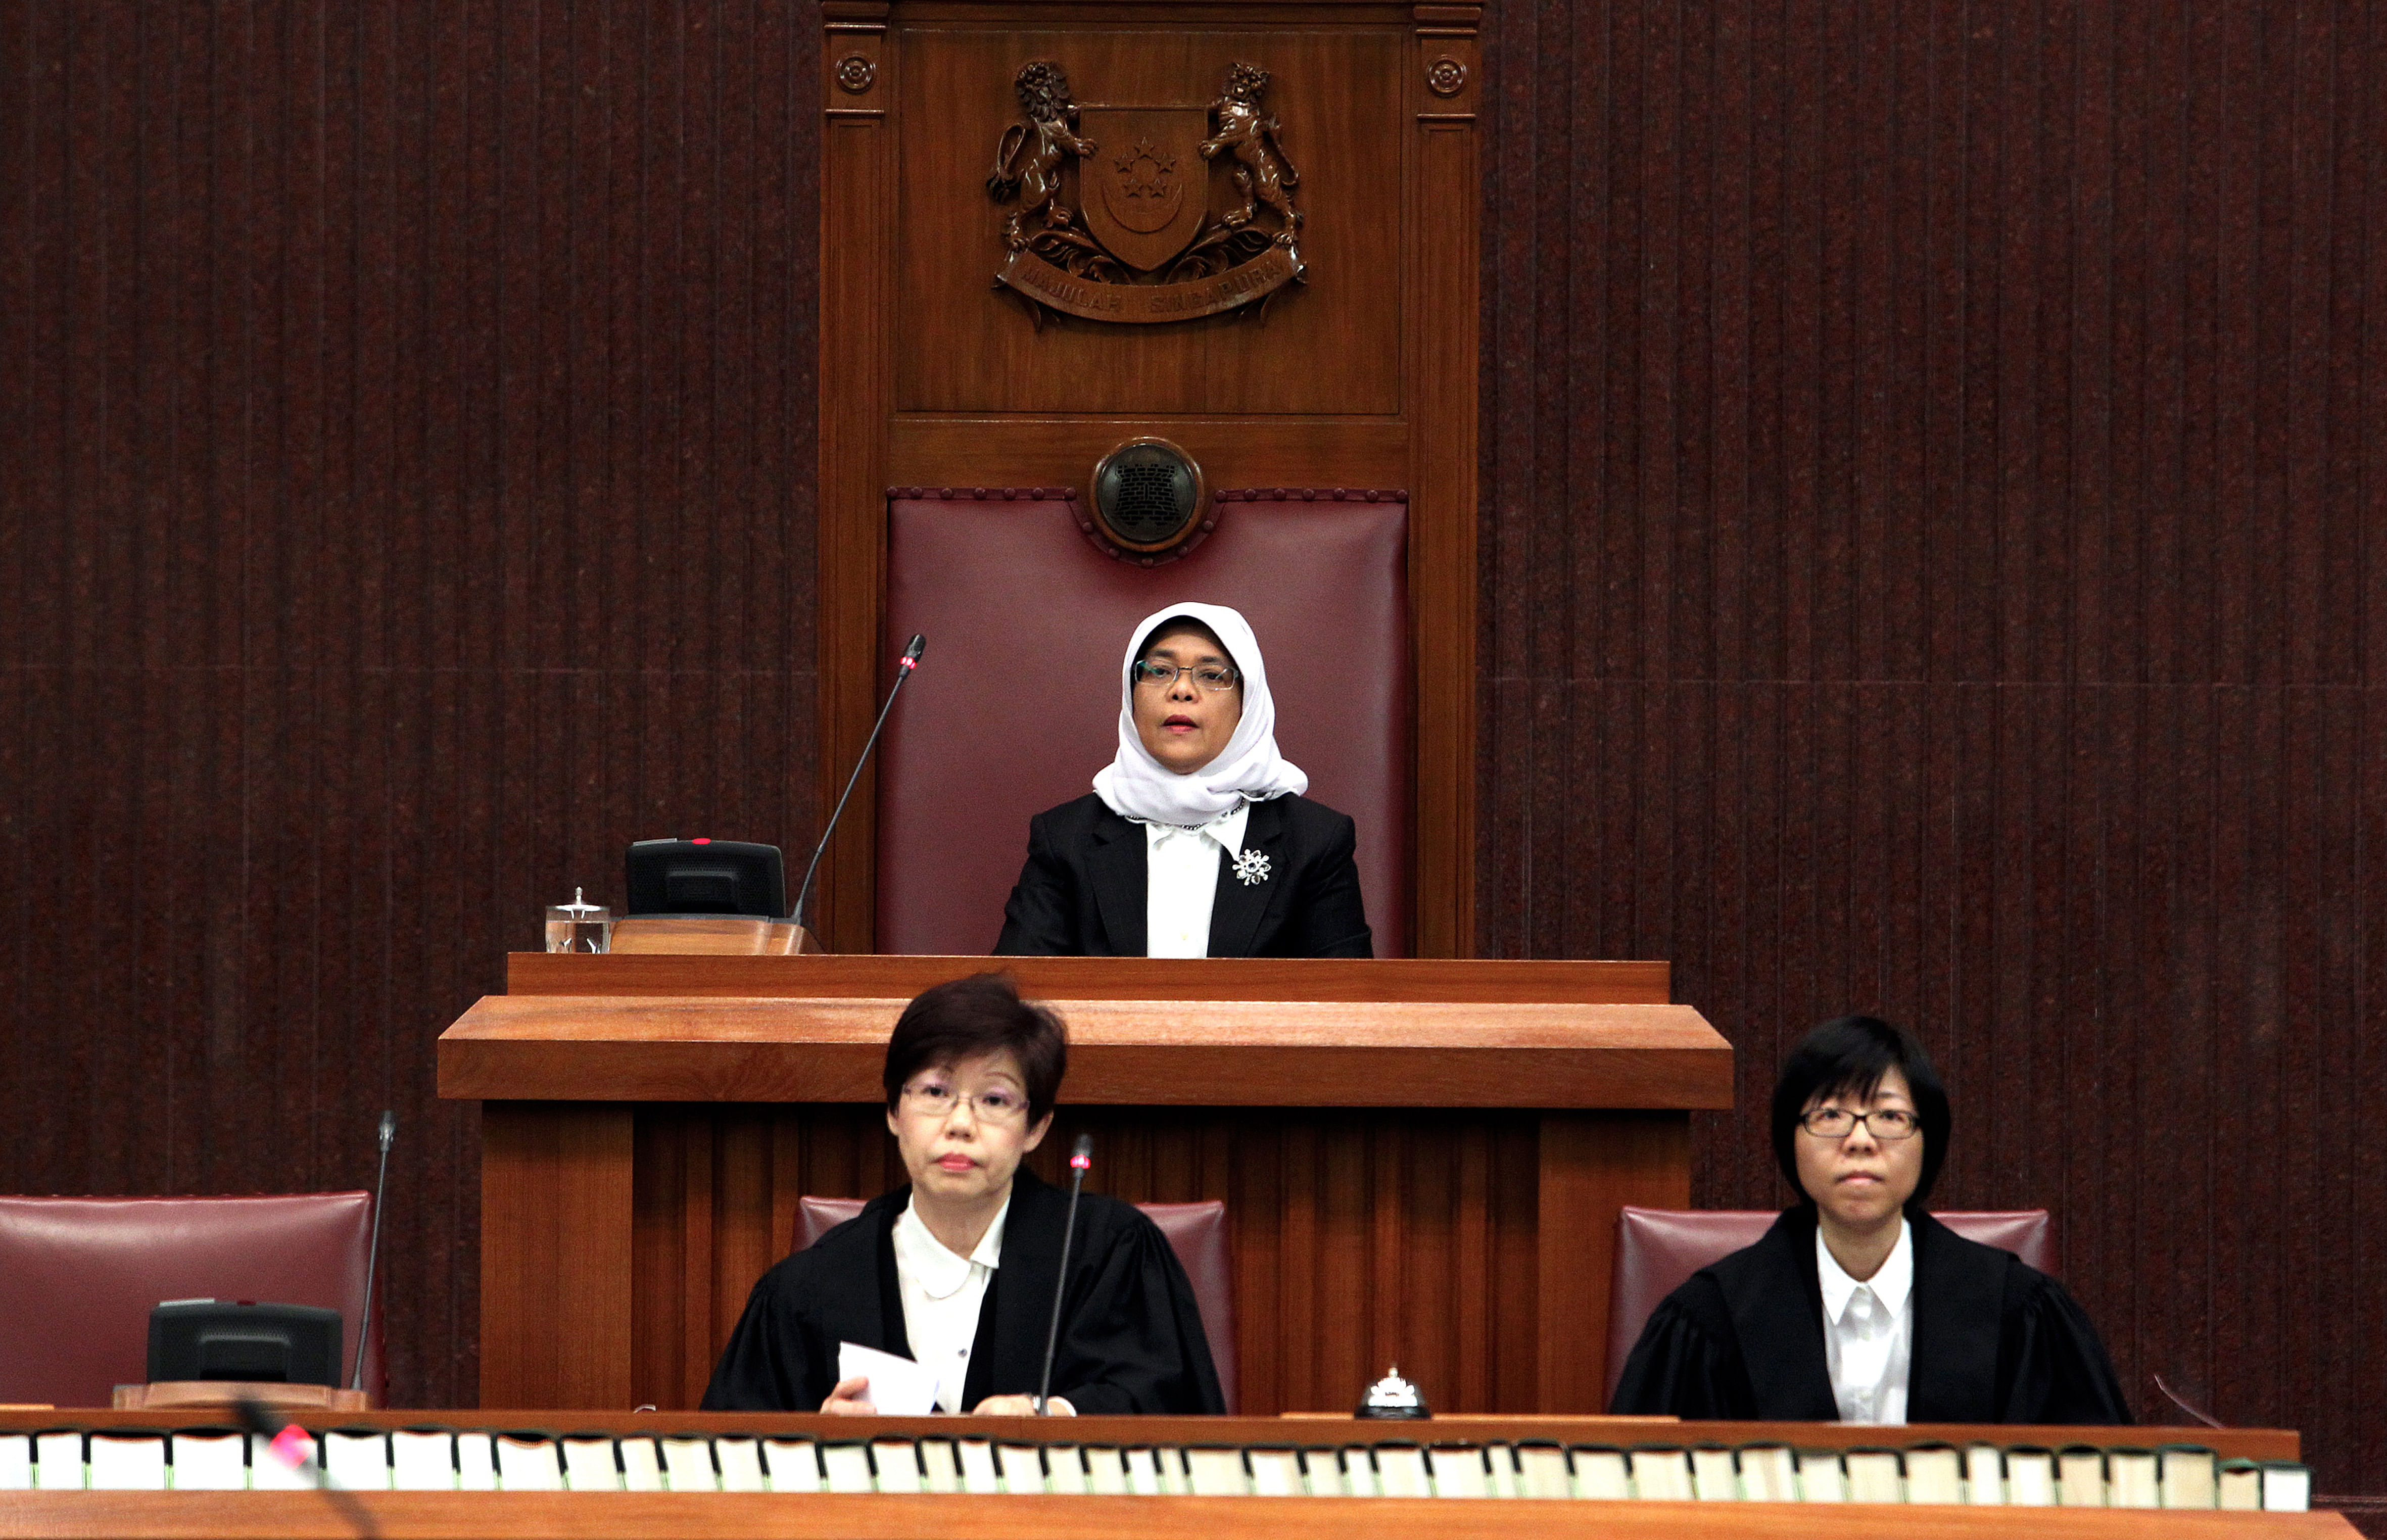 halimah yacob to be renominated as speaker of parliament: 7 things